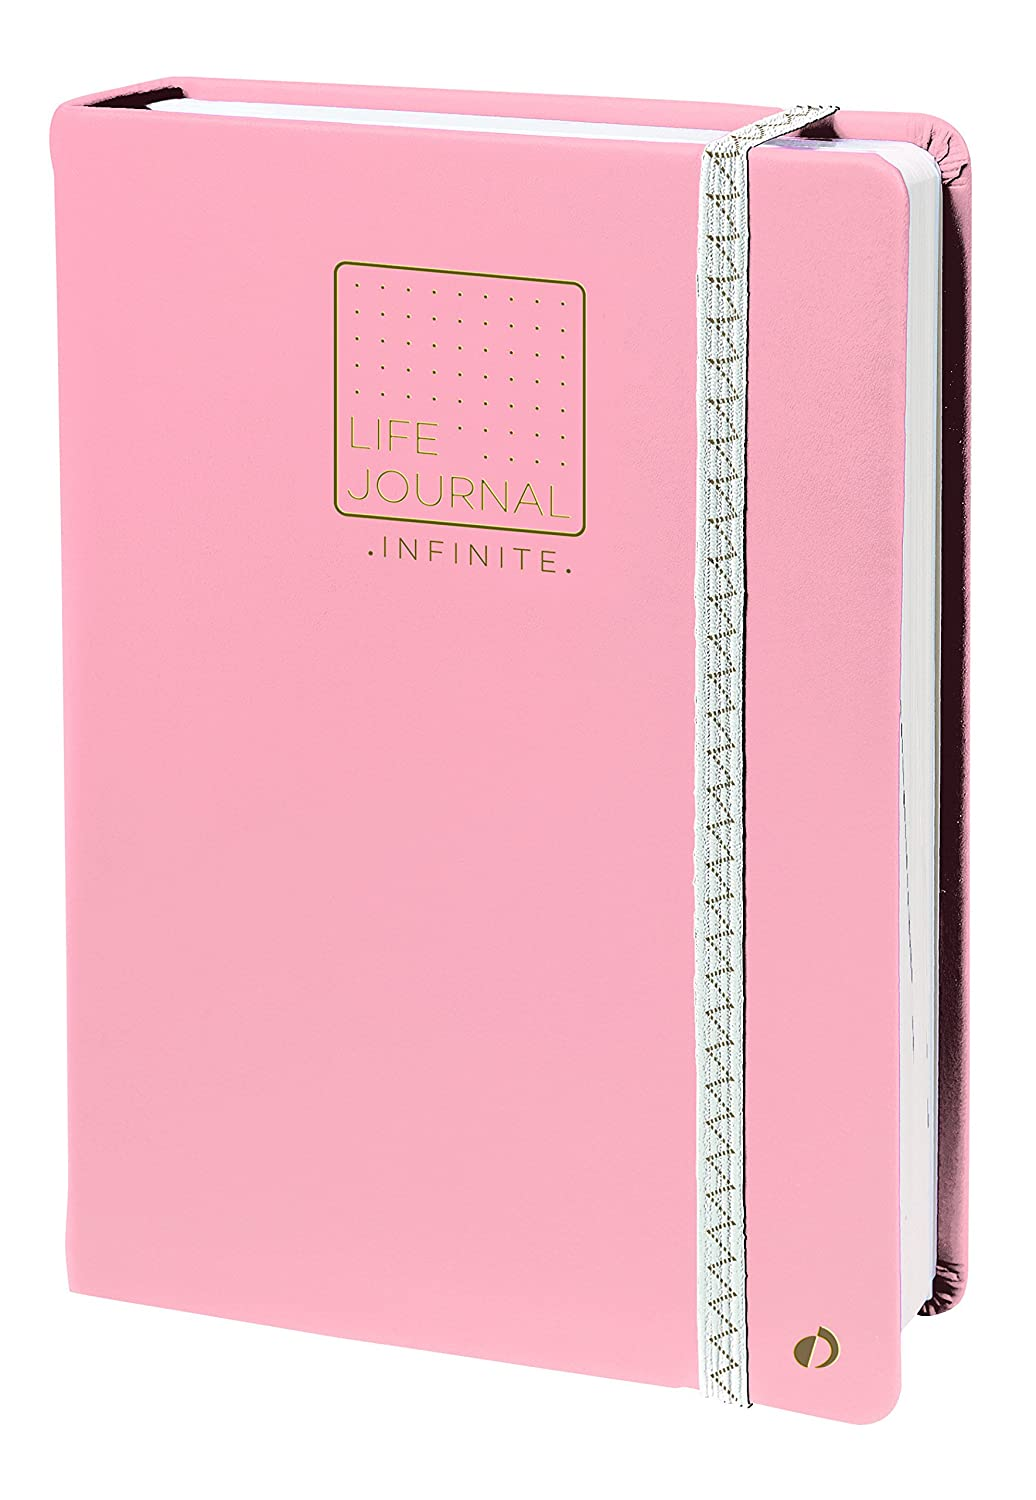 Quo Vadis 2371064Q - Life Journal INFINITE 15x21cm, Método Bullet Journal, Rosa;Life Journal Infinite